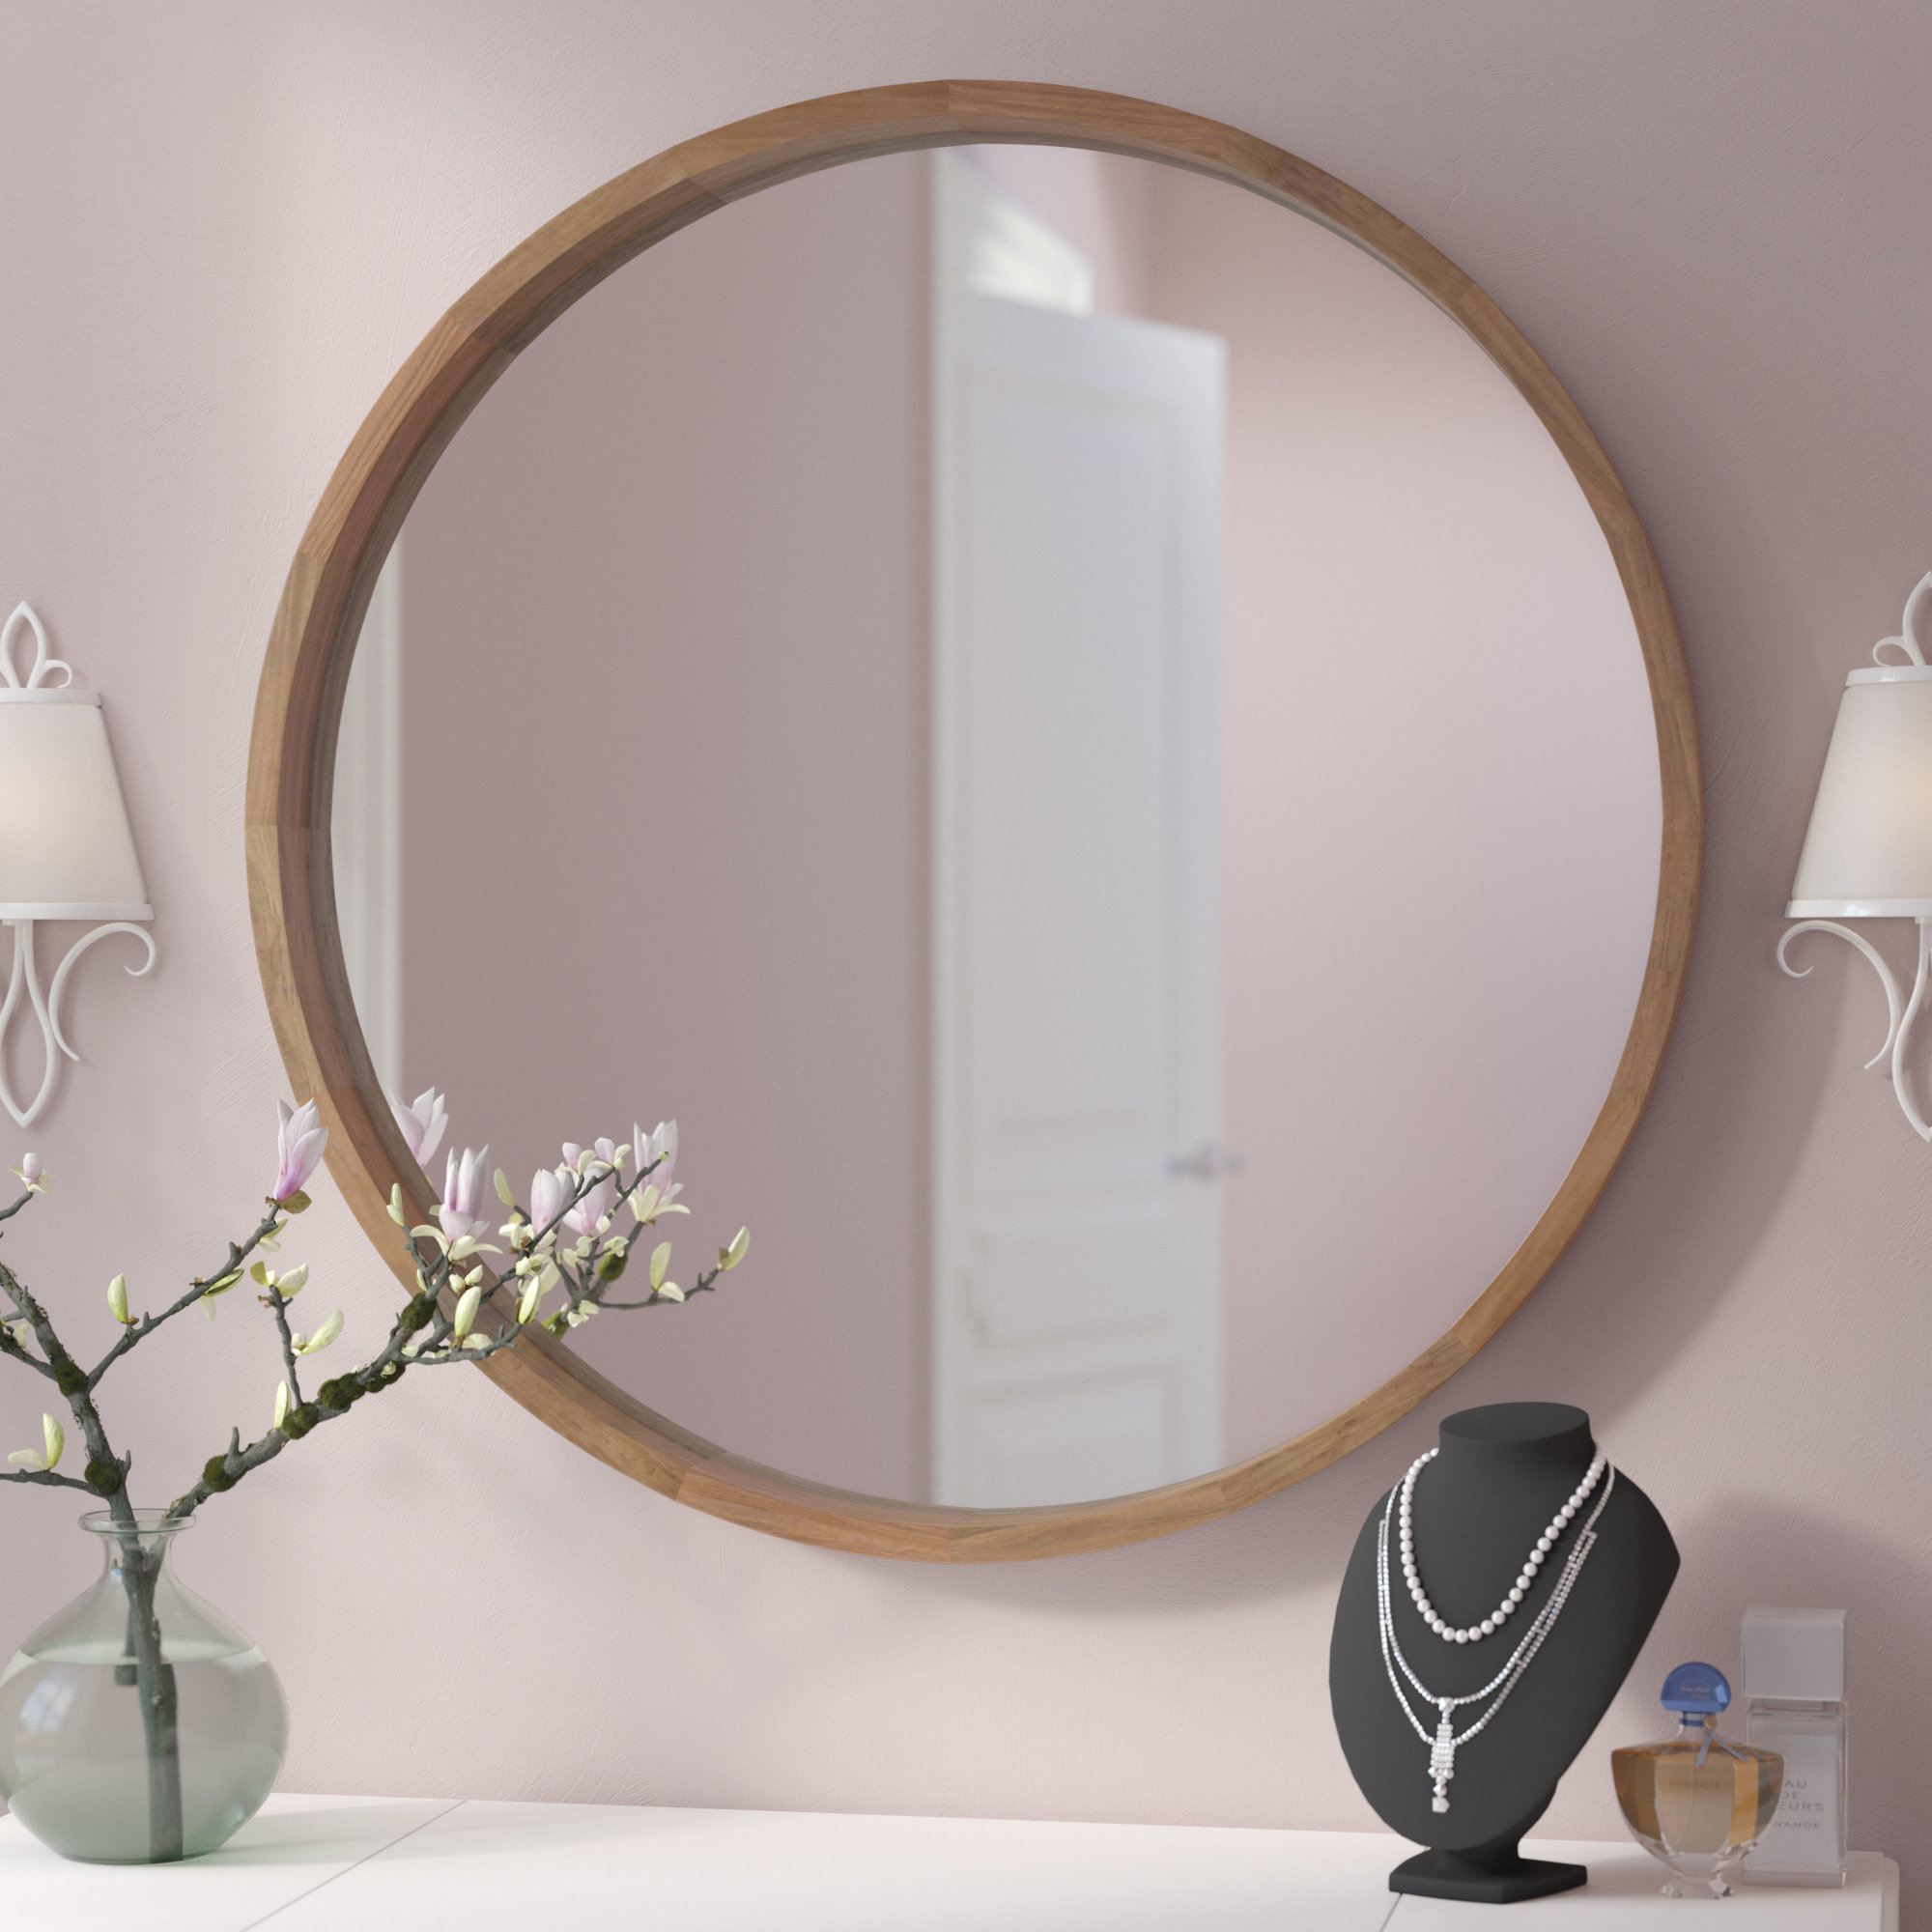 Modern & Contemporary Modern Wall Mirror | Allmodern Throughout Levan Modern & Contemporary Accent Mirrors (View 19 of 20)